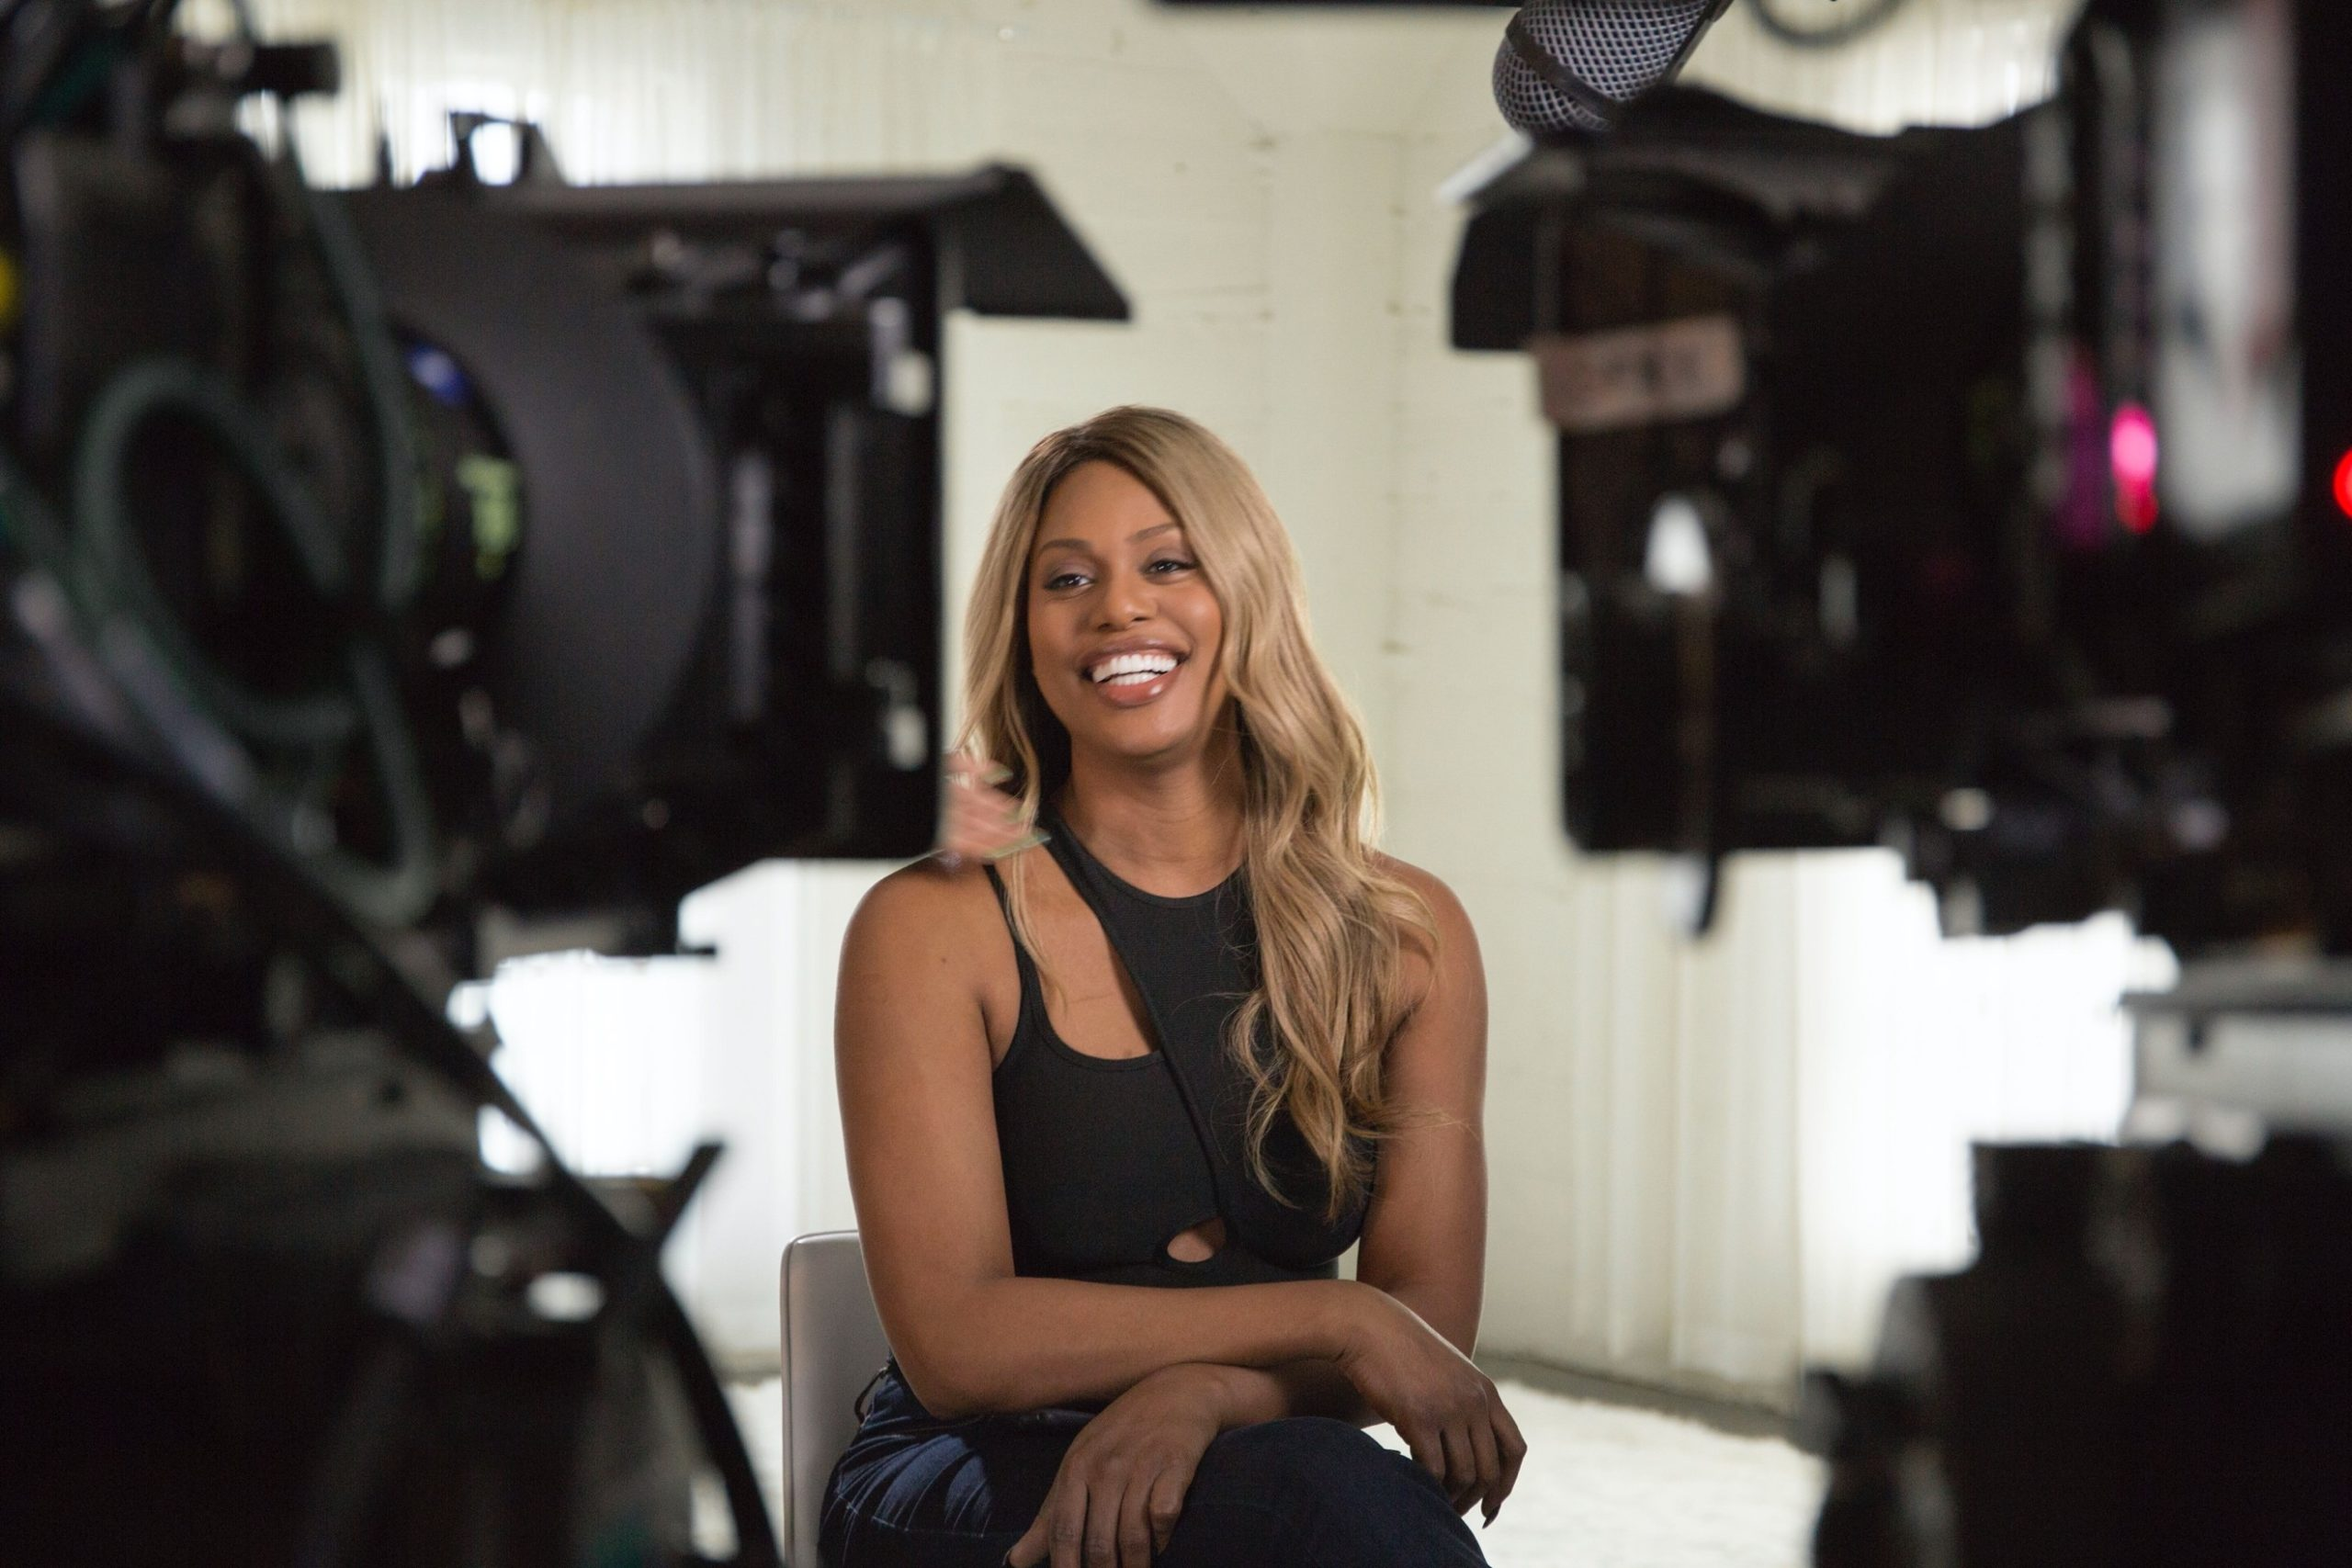 Leverne Cox smiles while sitting between two cameras in the documentary Disclosure: Trans Lives on Screen